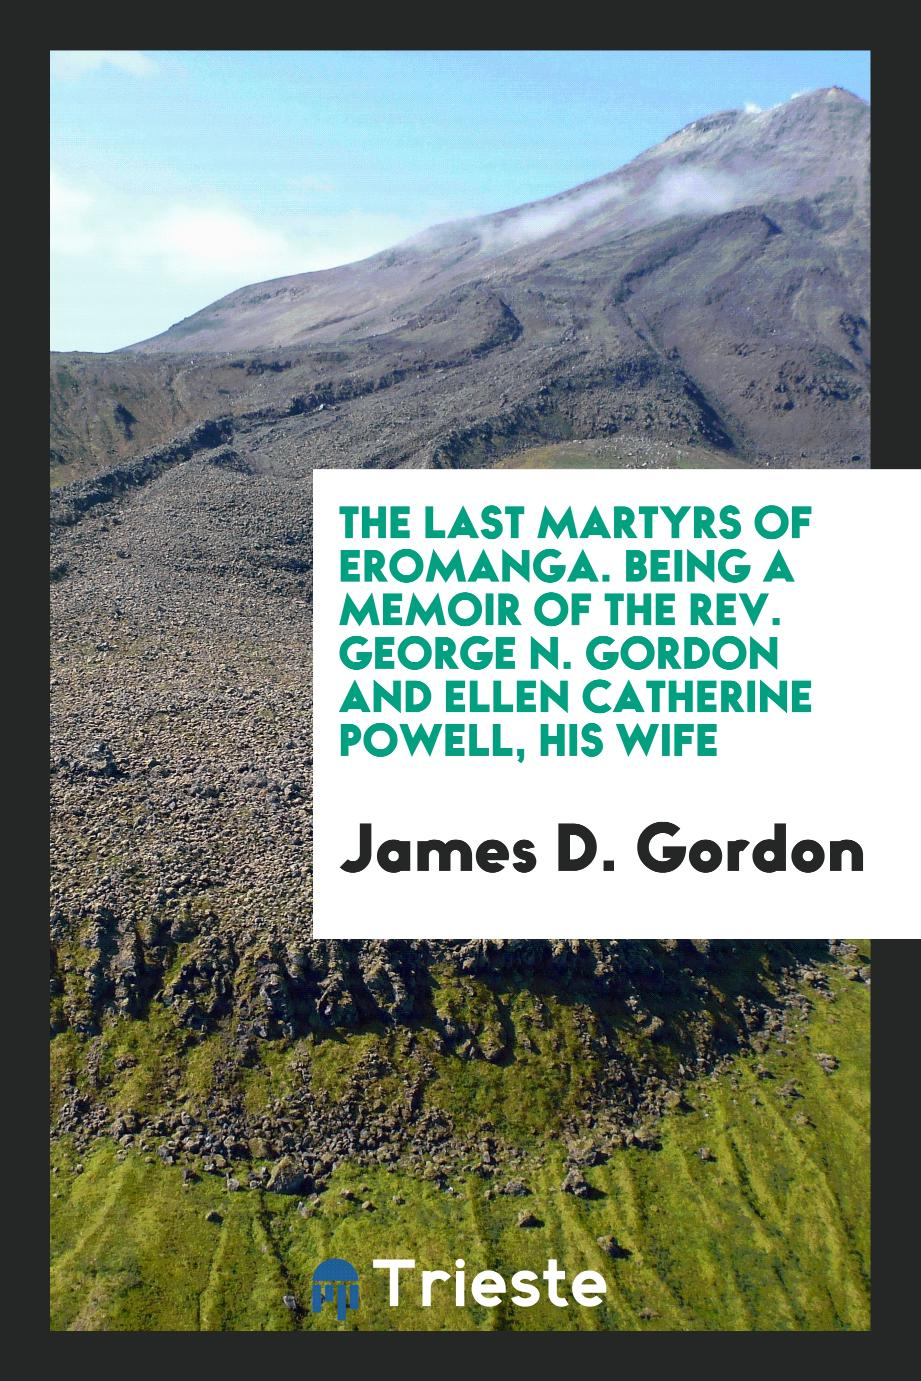 The Last Martyrs of Eromanga. Being a Memoir of the Rev. George N. Gordon and Ellen Catherine Powell, His Wife